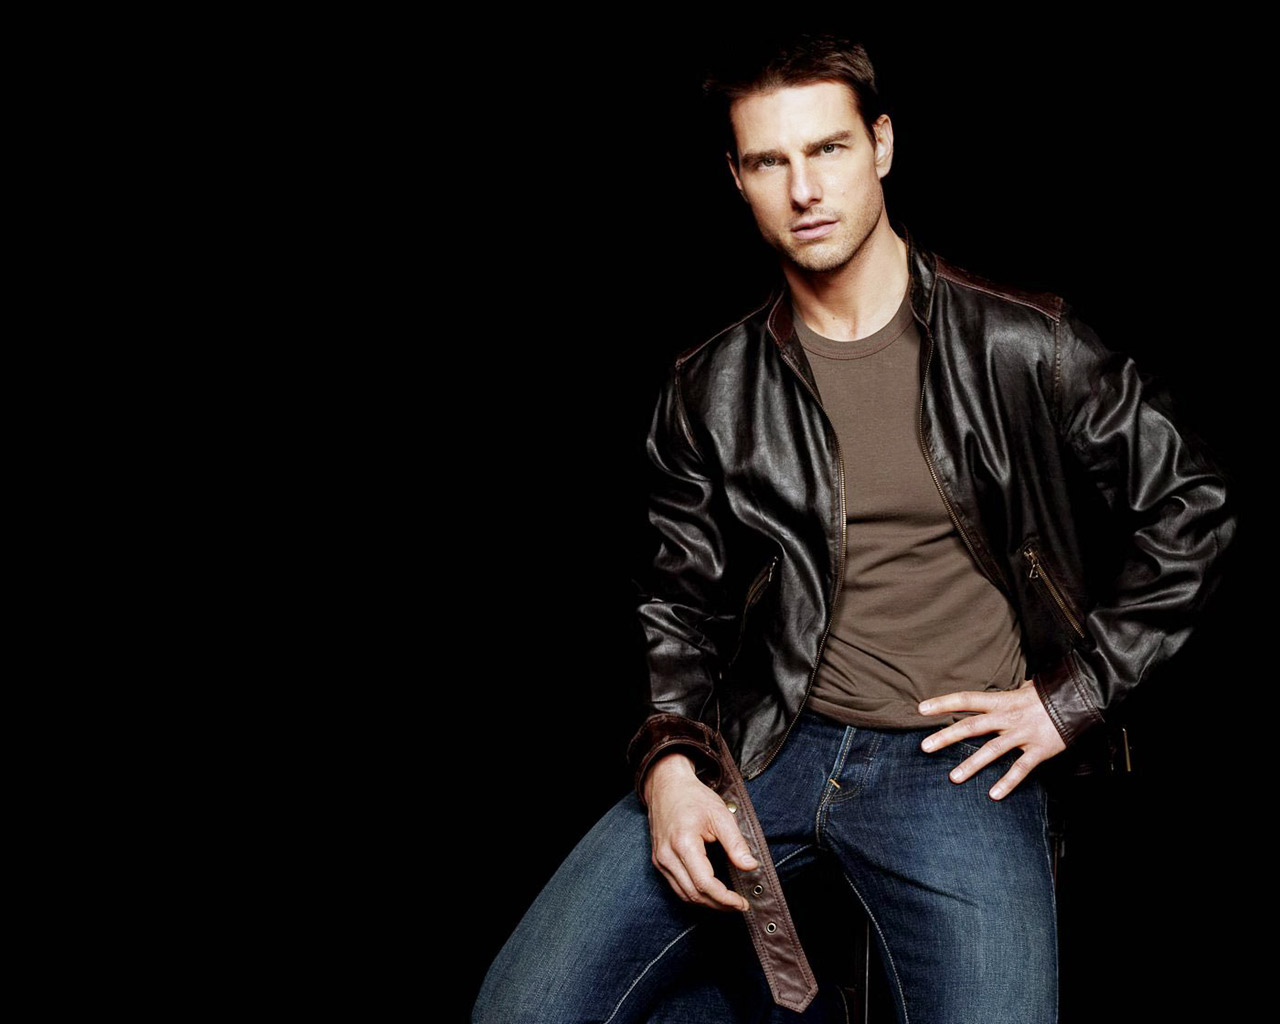 Tom Cruise, El Actor Mejor Pagado Del Mundo